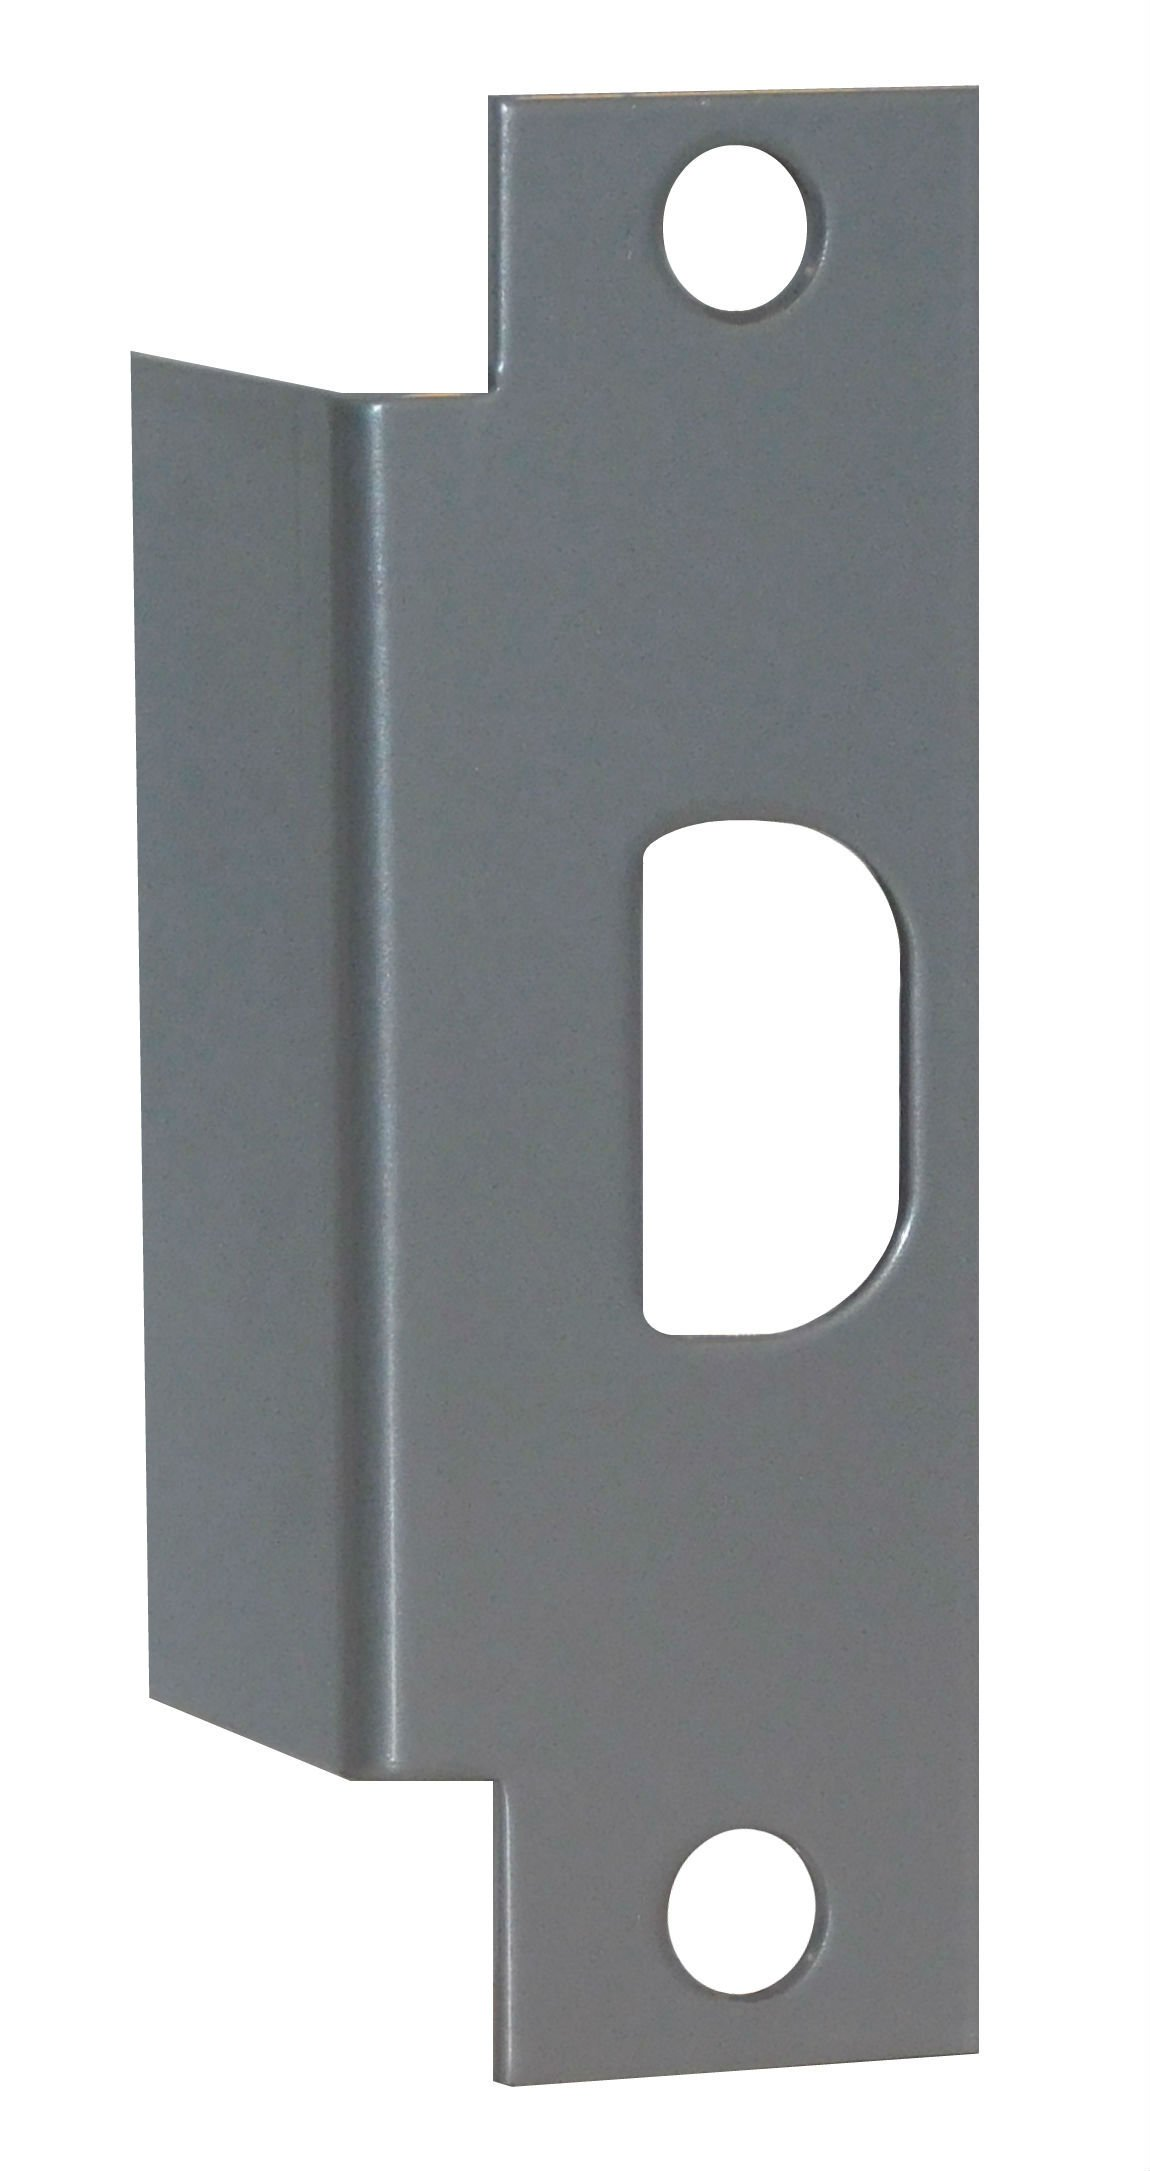 Don-Jo Electric Strike Conversion AF-261 Silver Lacquer Finish 4 7/8 Inch Convert Electric Strike Prep To Cylindrical Lock Strike Prep